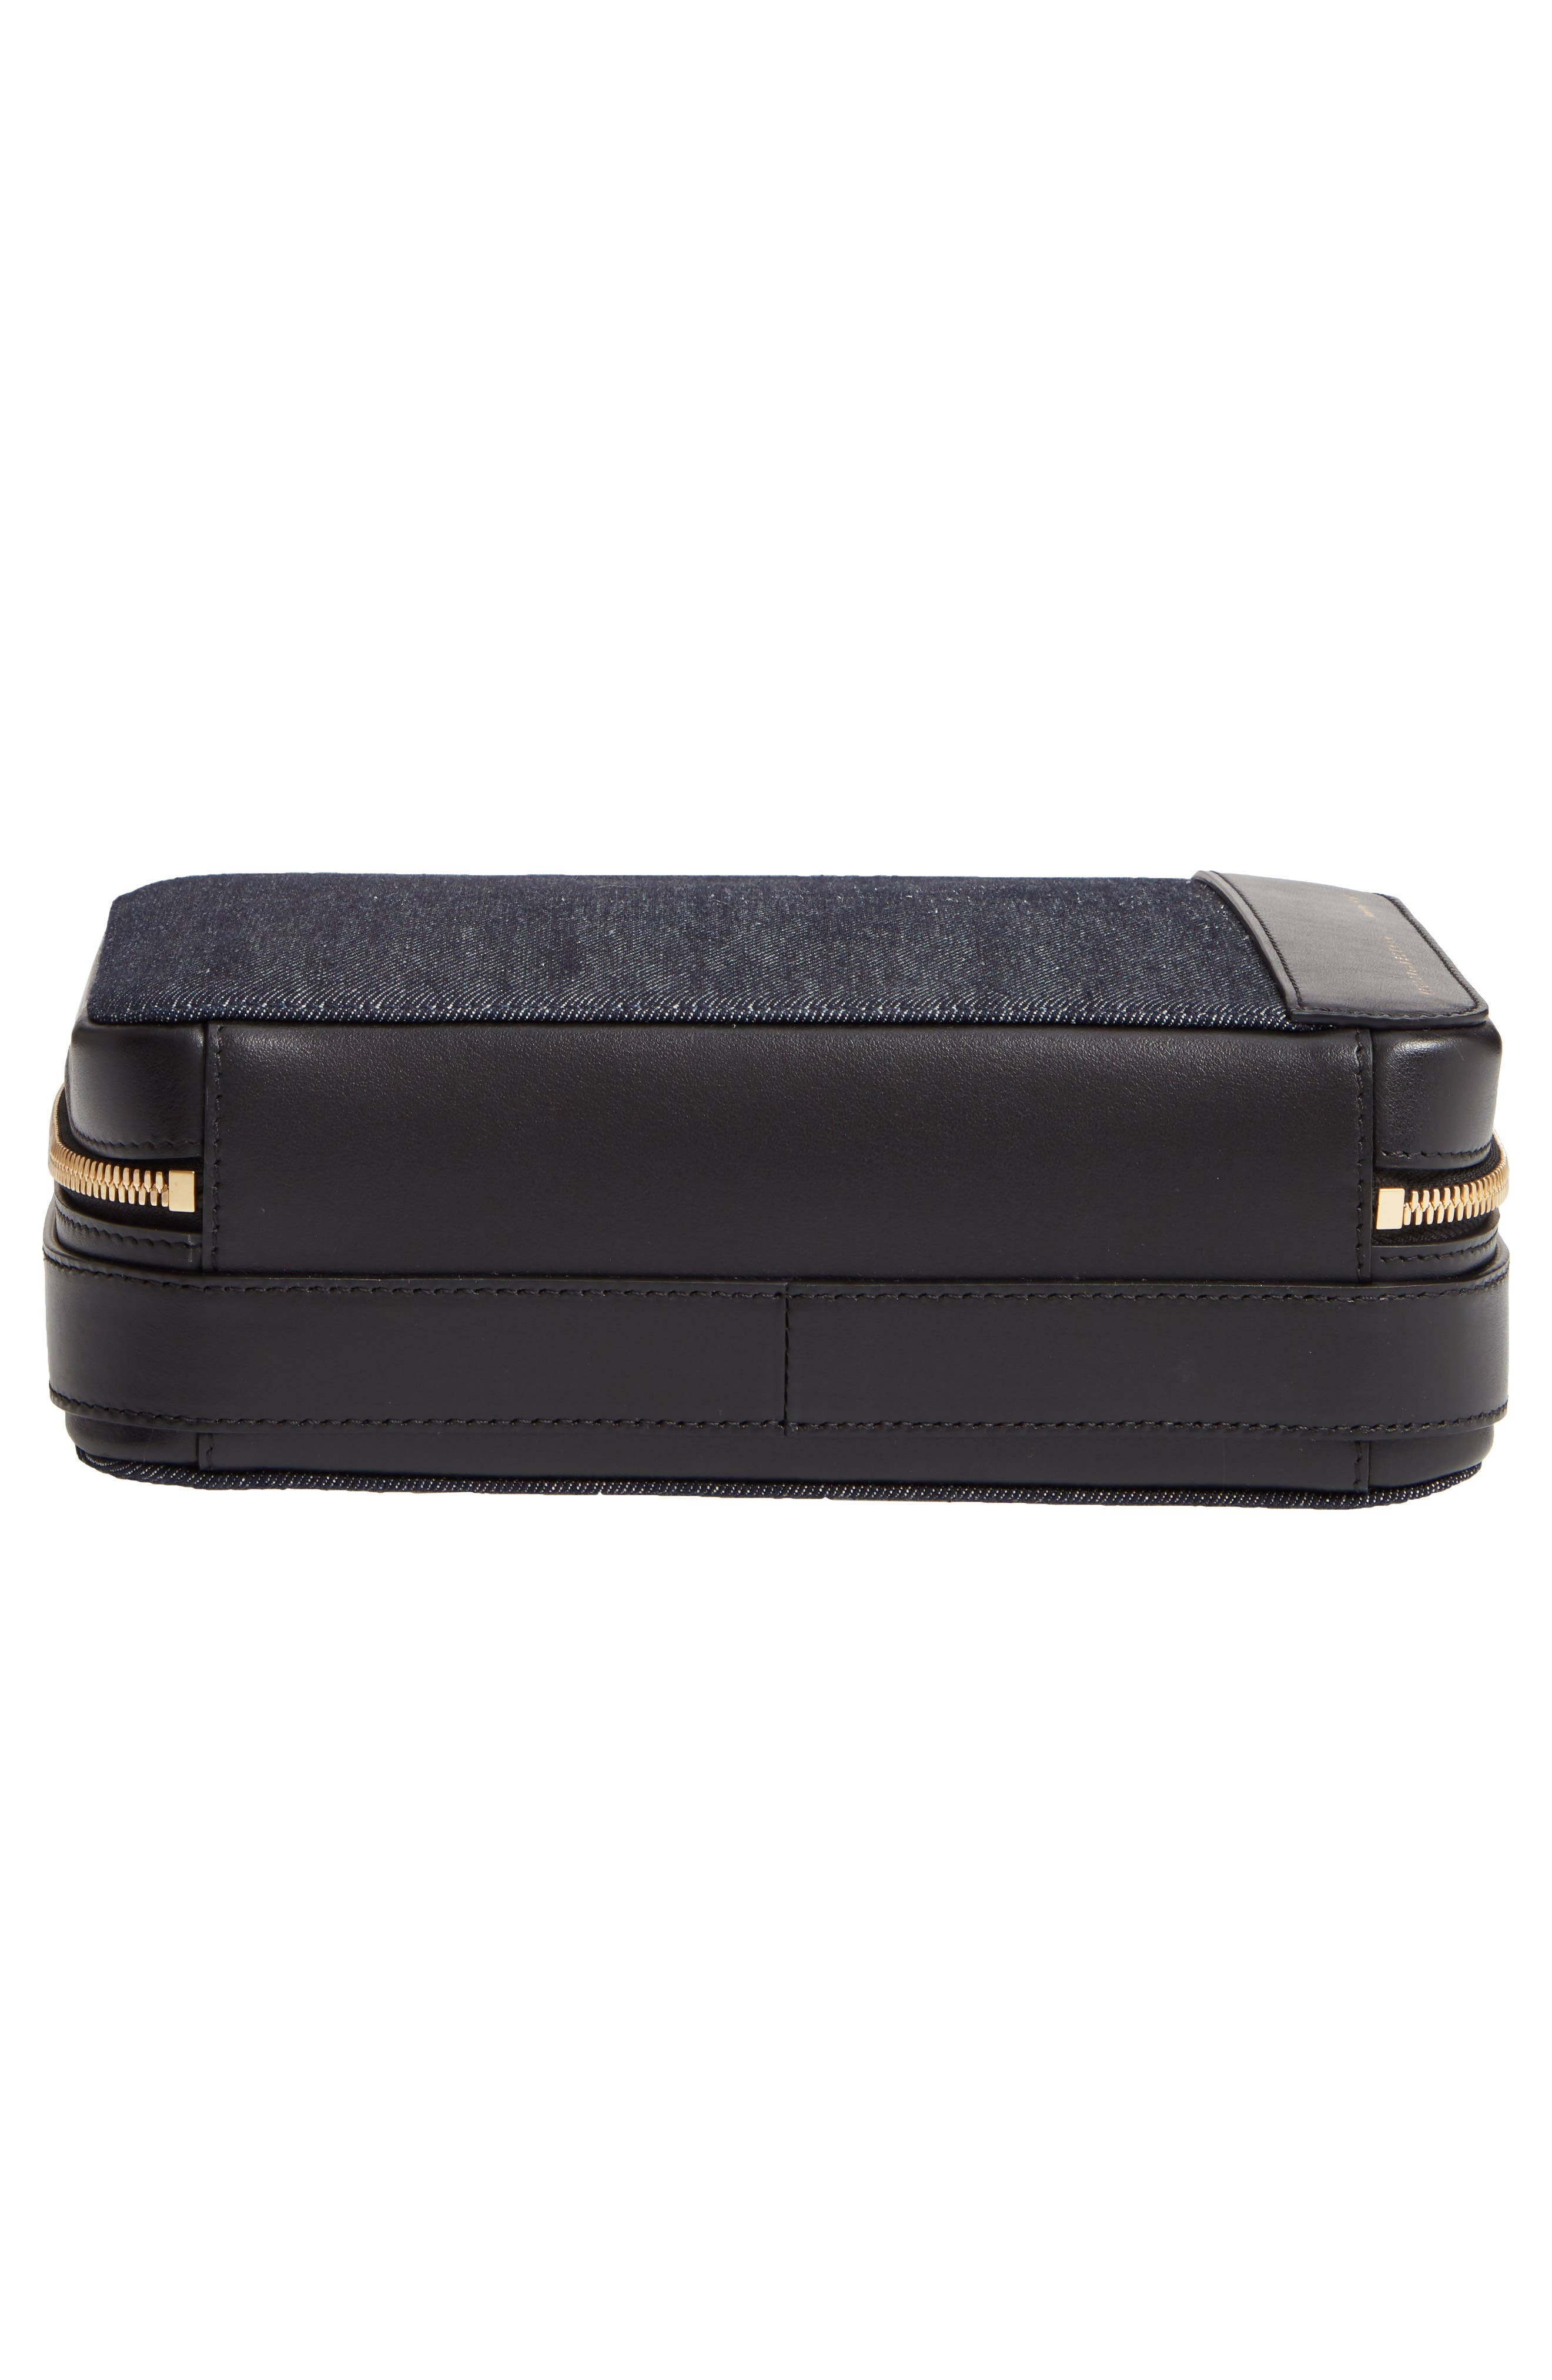 VICTORIA BECKHAM, Vanity Denim & Leather Camera Bag, Alternate thumbnail 6, color, INDIGO/ BLACK